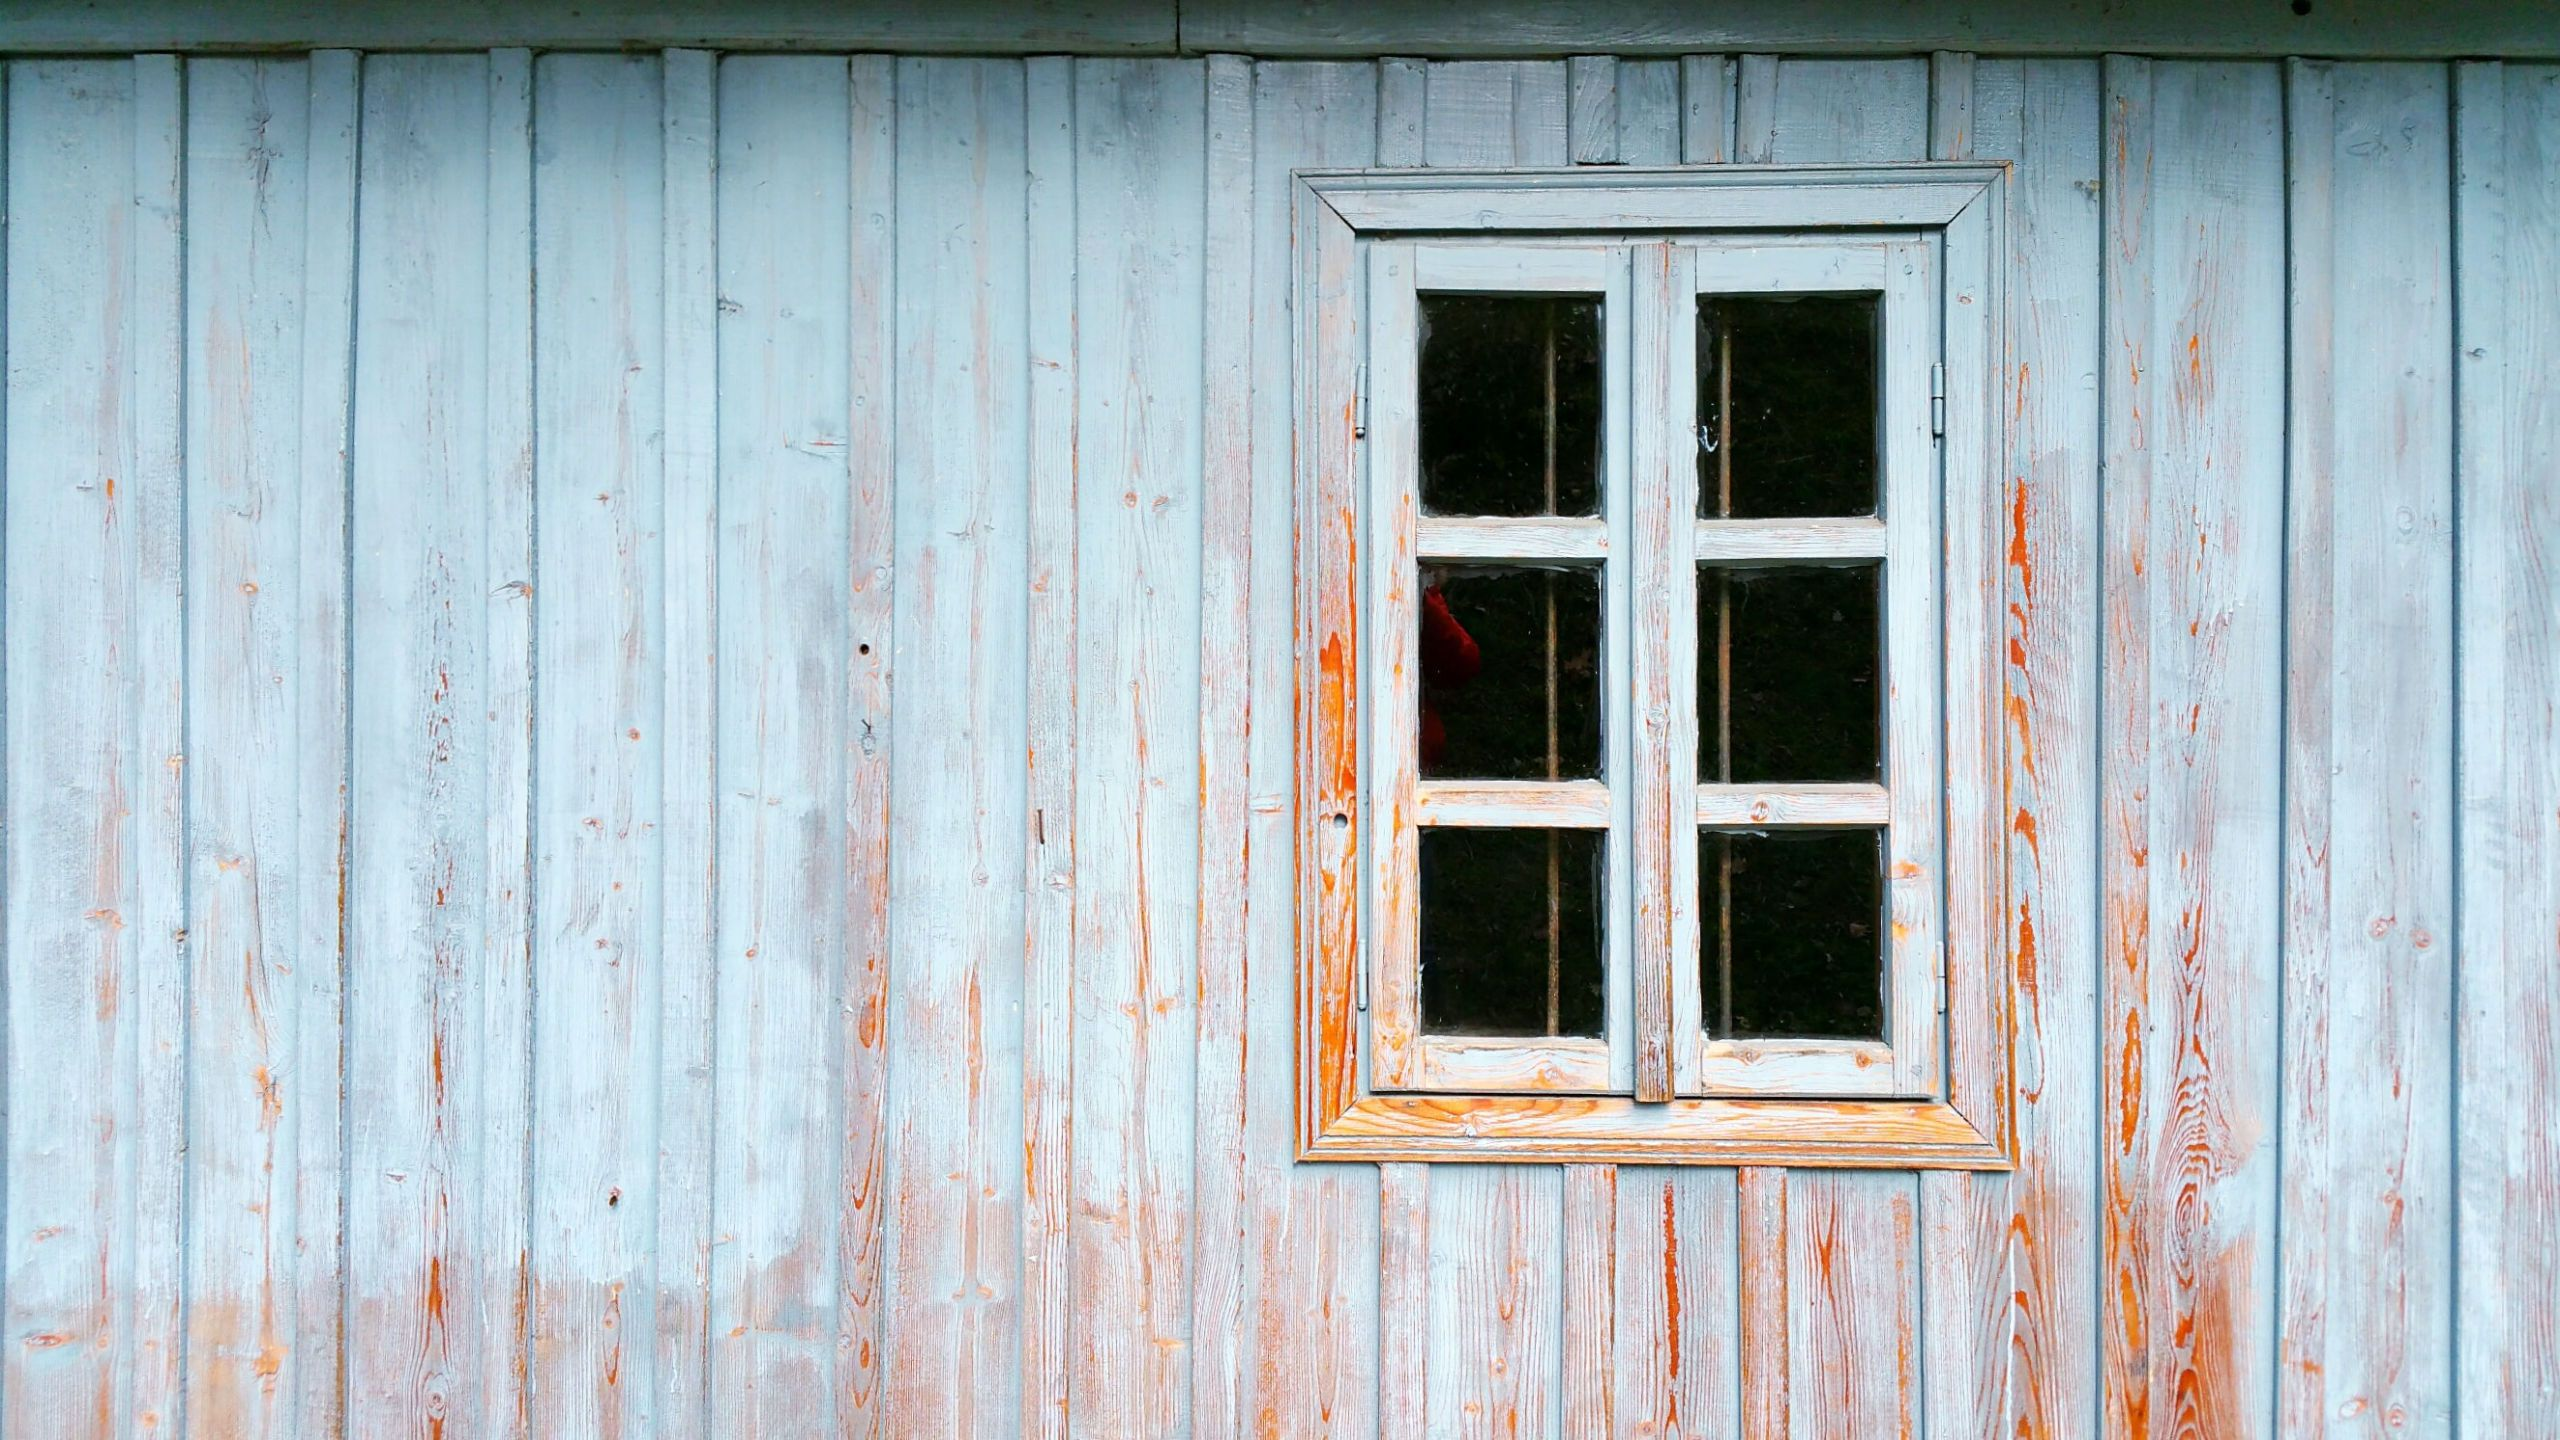 Are My Old Wooden Windows Wasting Energy?